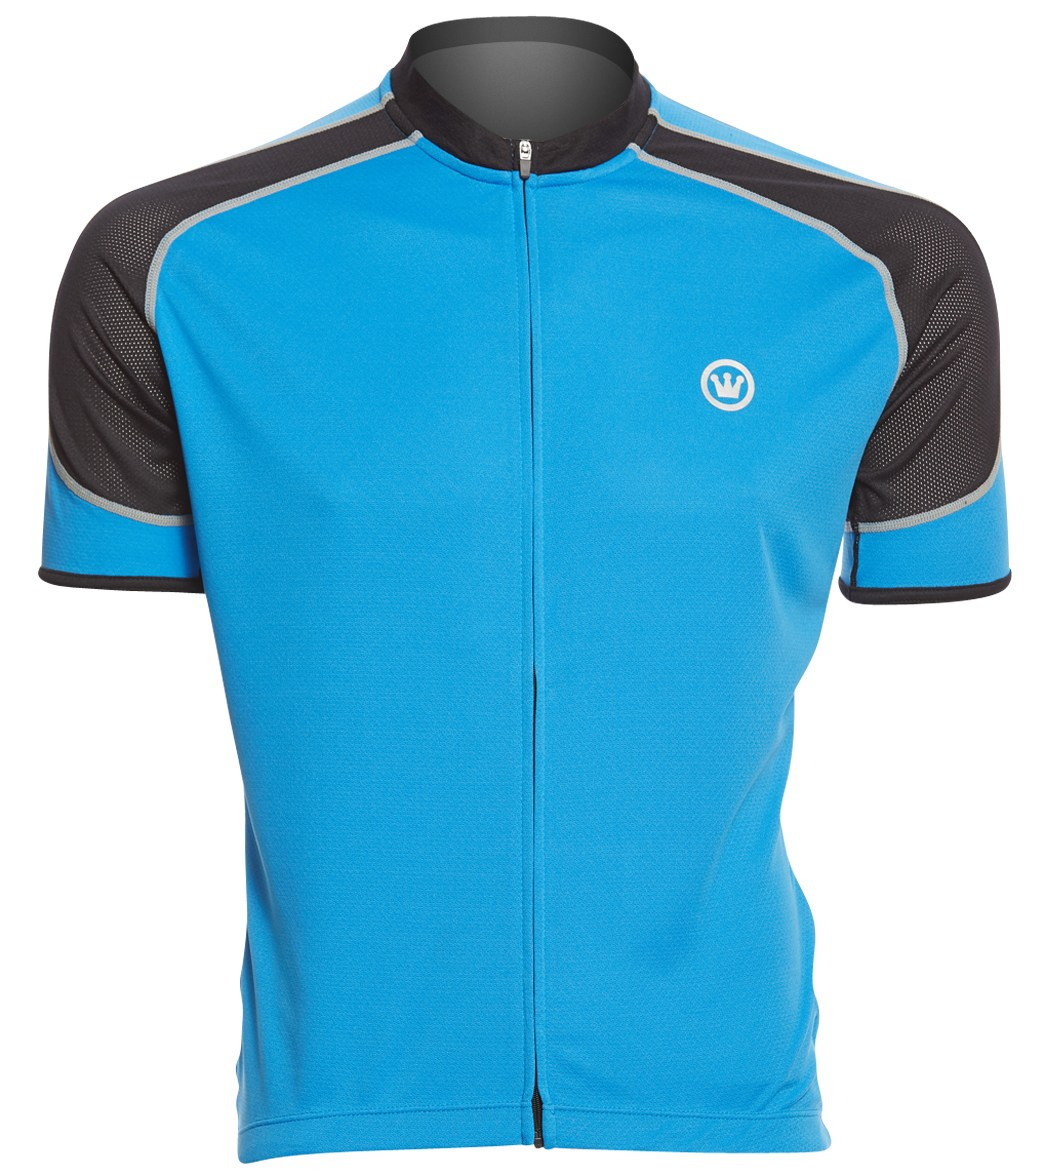 Canari Men s Streamline Short Sleeve Cycling Jersey at SwimOutlet.com 0c7d2514f